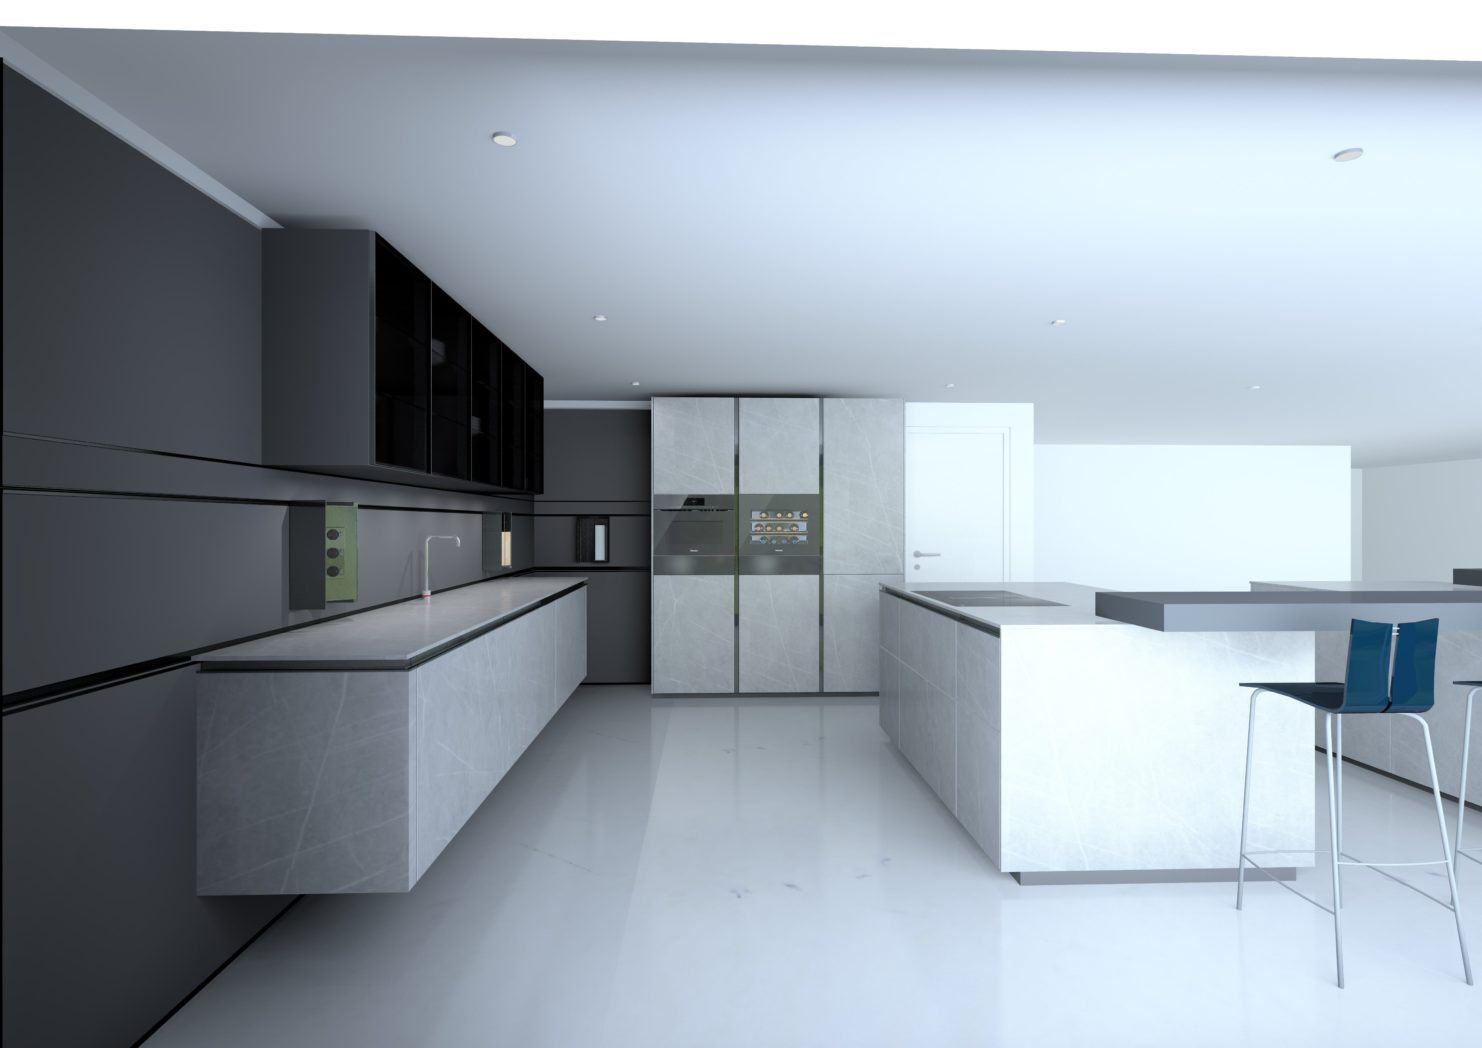 Kitchen CAD - Kitchen Surveyor